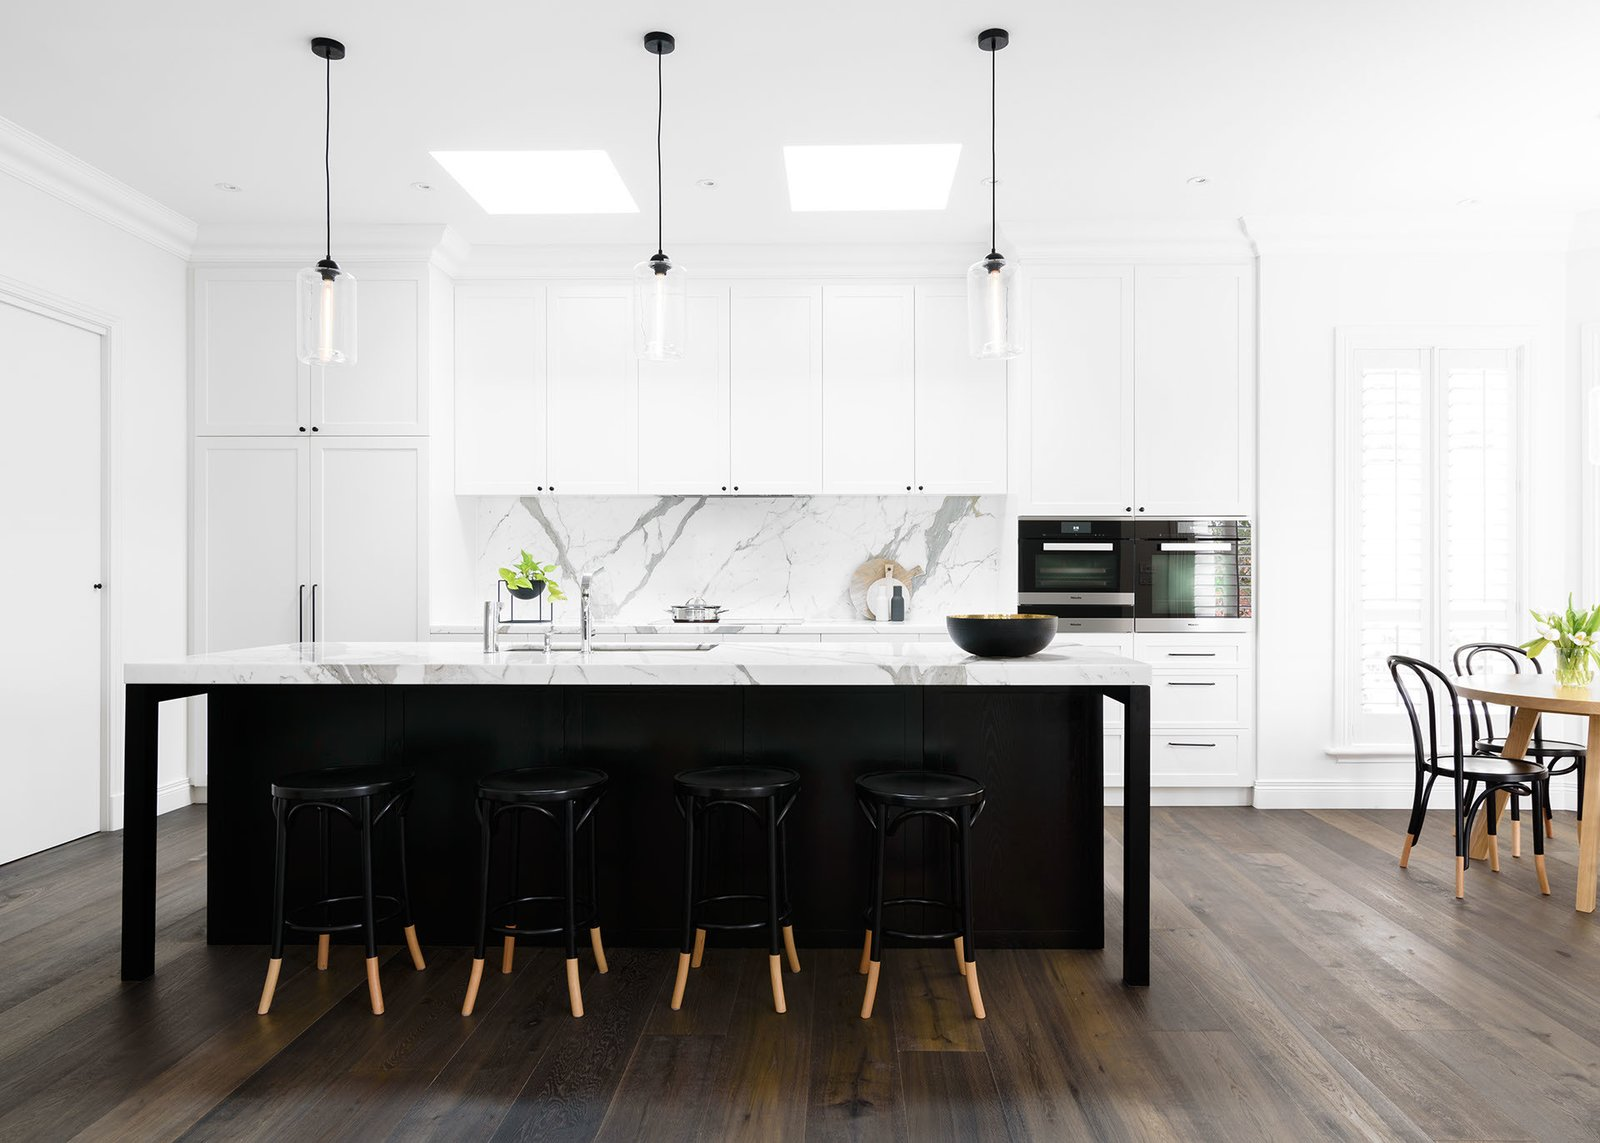 Kitchen, Marble, White, Wood, Medium Hardwood, Stone Slab, Pendant, Ceiling, Recessed, Dark Hardwood, Wall Oven, Cooktops, Range, Drop In, and Undermount Kitchen  Best Kitchen Range Ceiling White Wall Oven Dark Hardwood Medium Hardwood Photos from PRK Residence